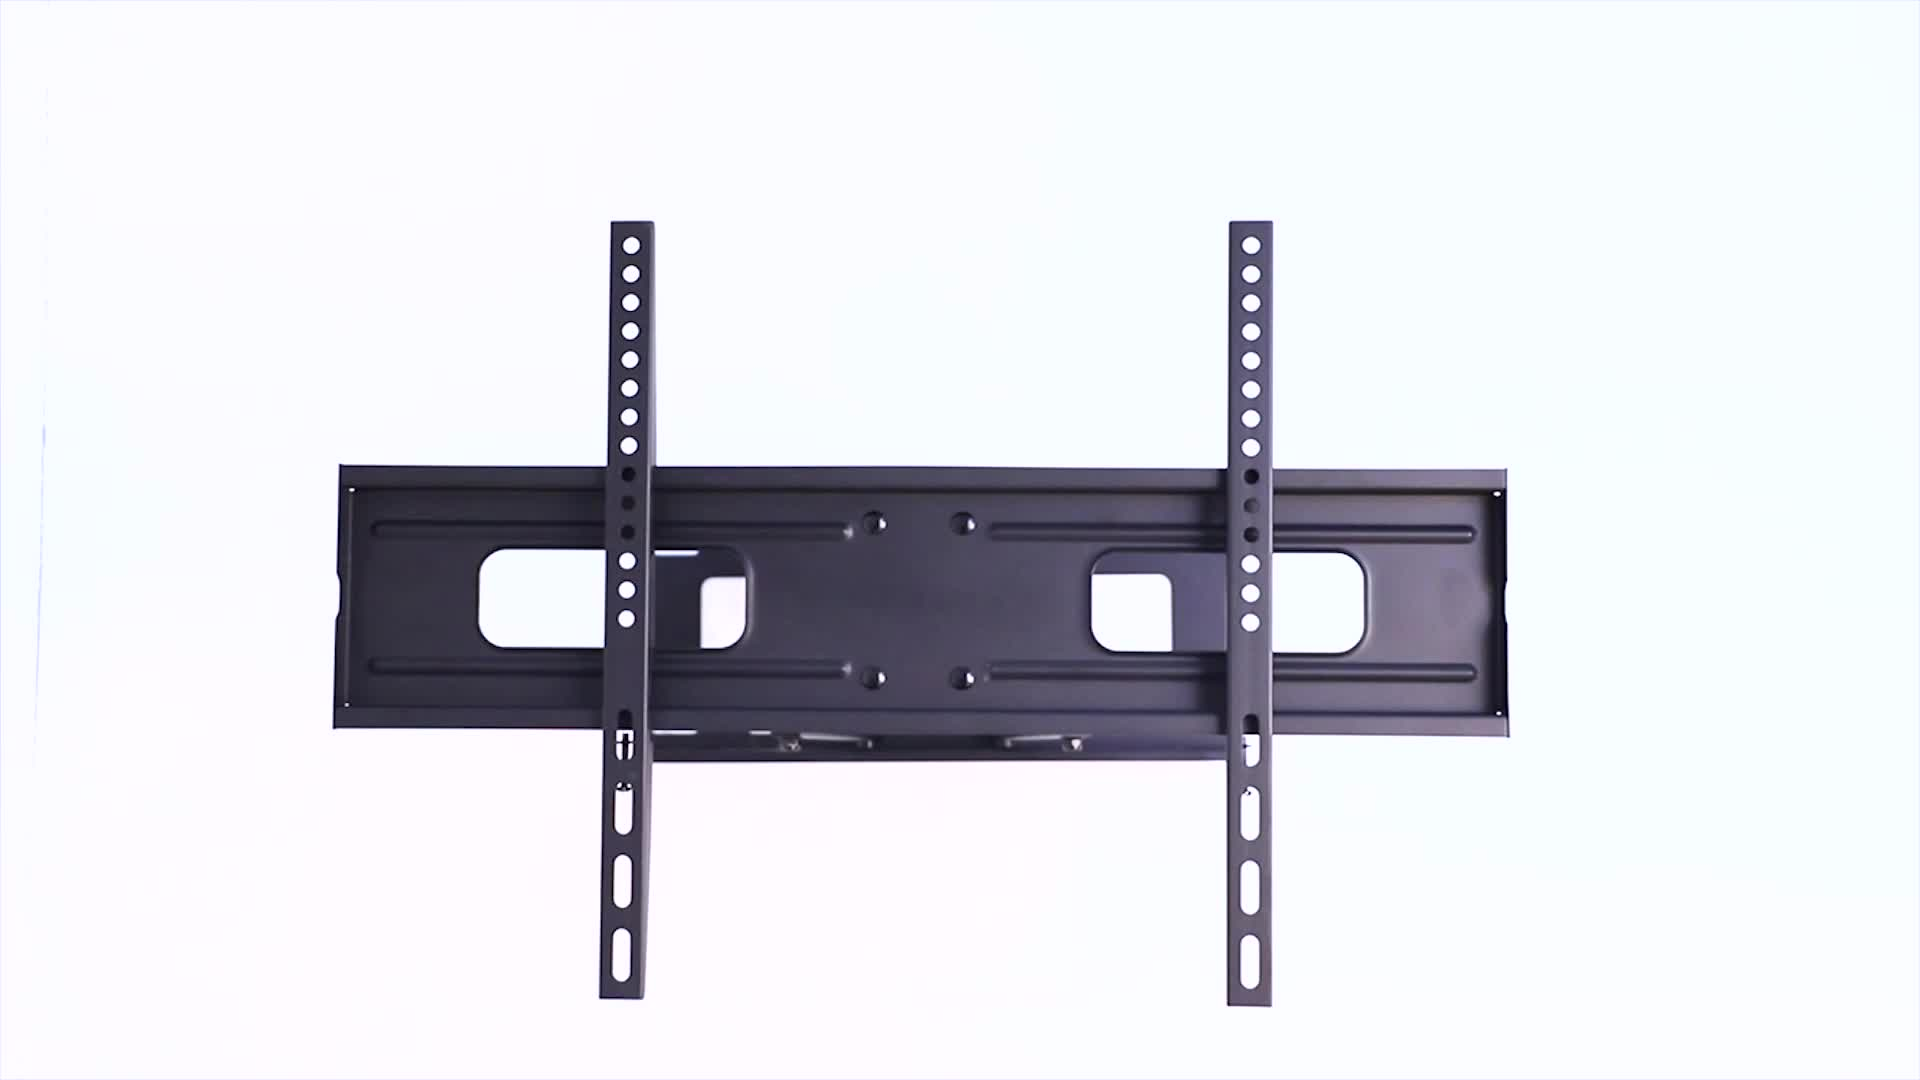 Living Room Furnitures Economy Wall Mounted Brackets Full Motion TV Wall Mount with Articulating Arms